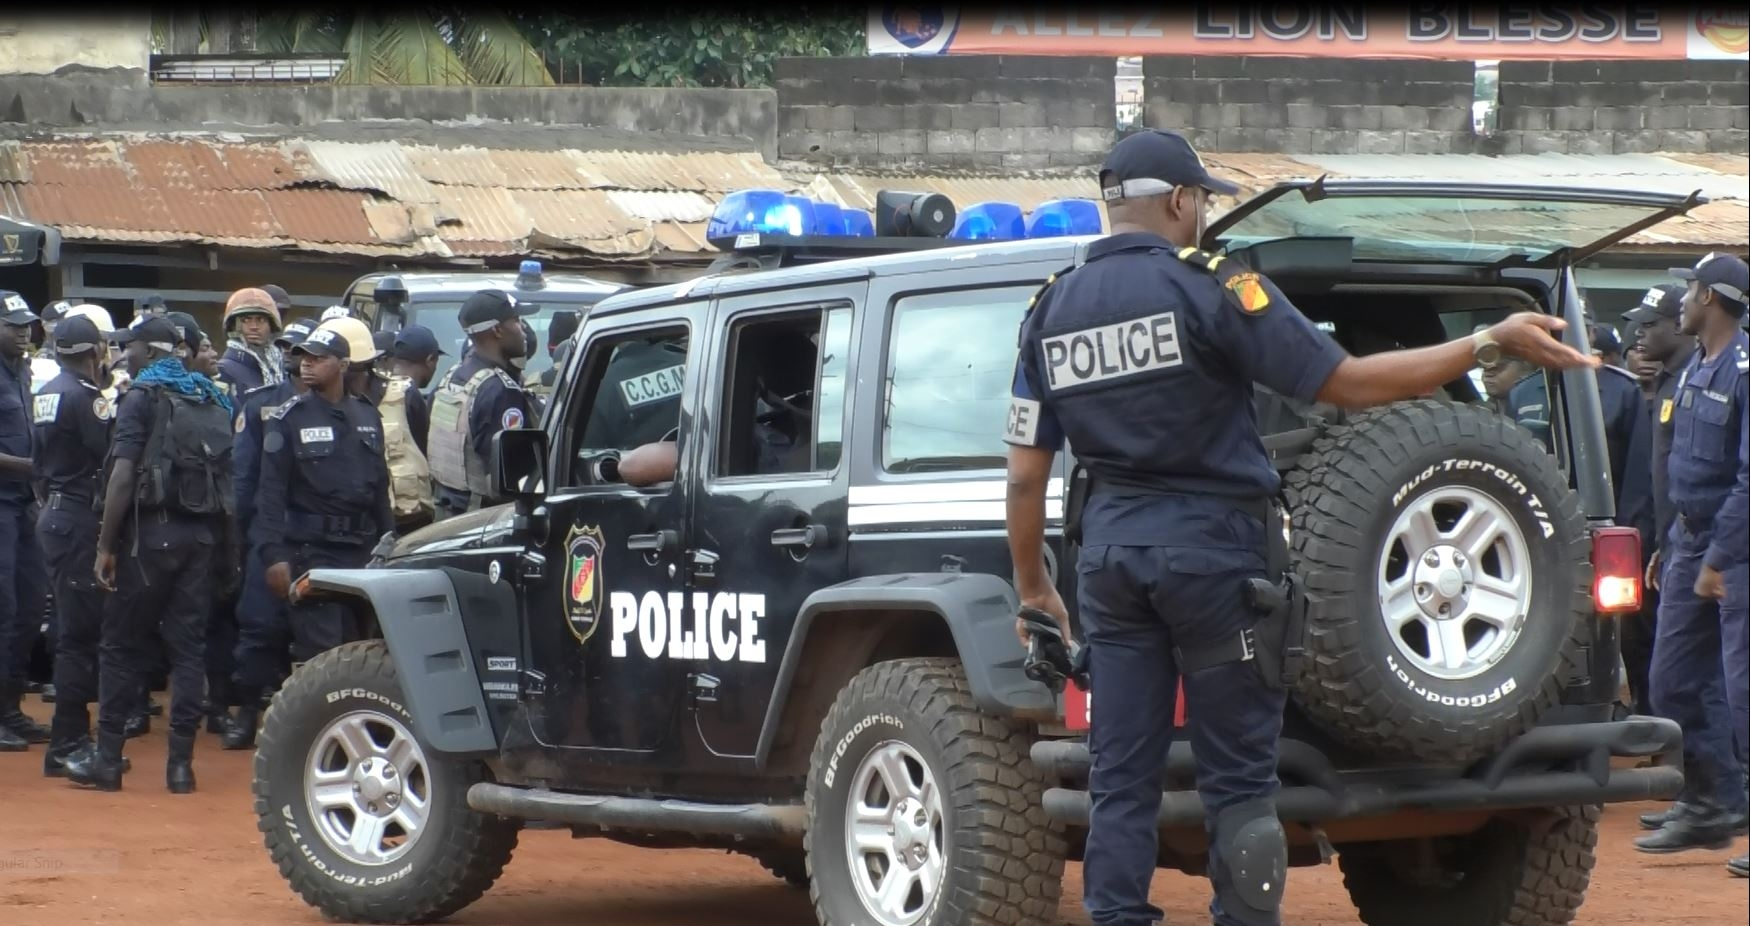 Cameroon: Authorities urged to seek justice for recent deadly attacks